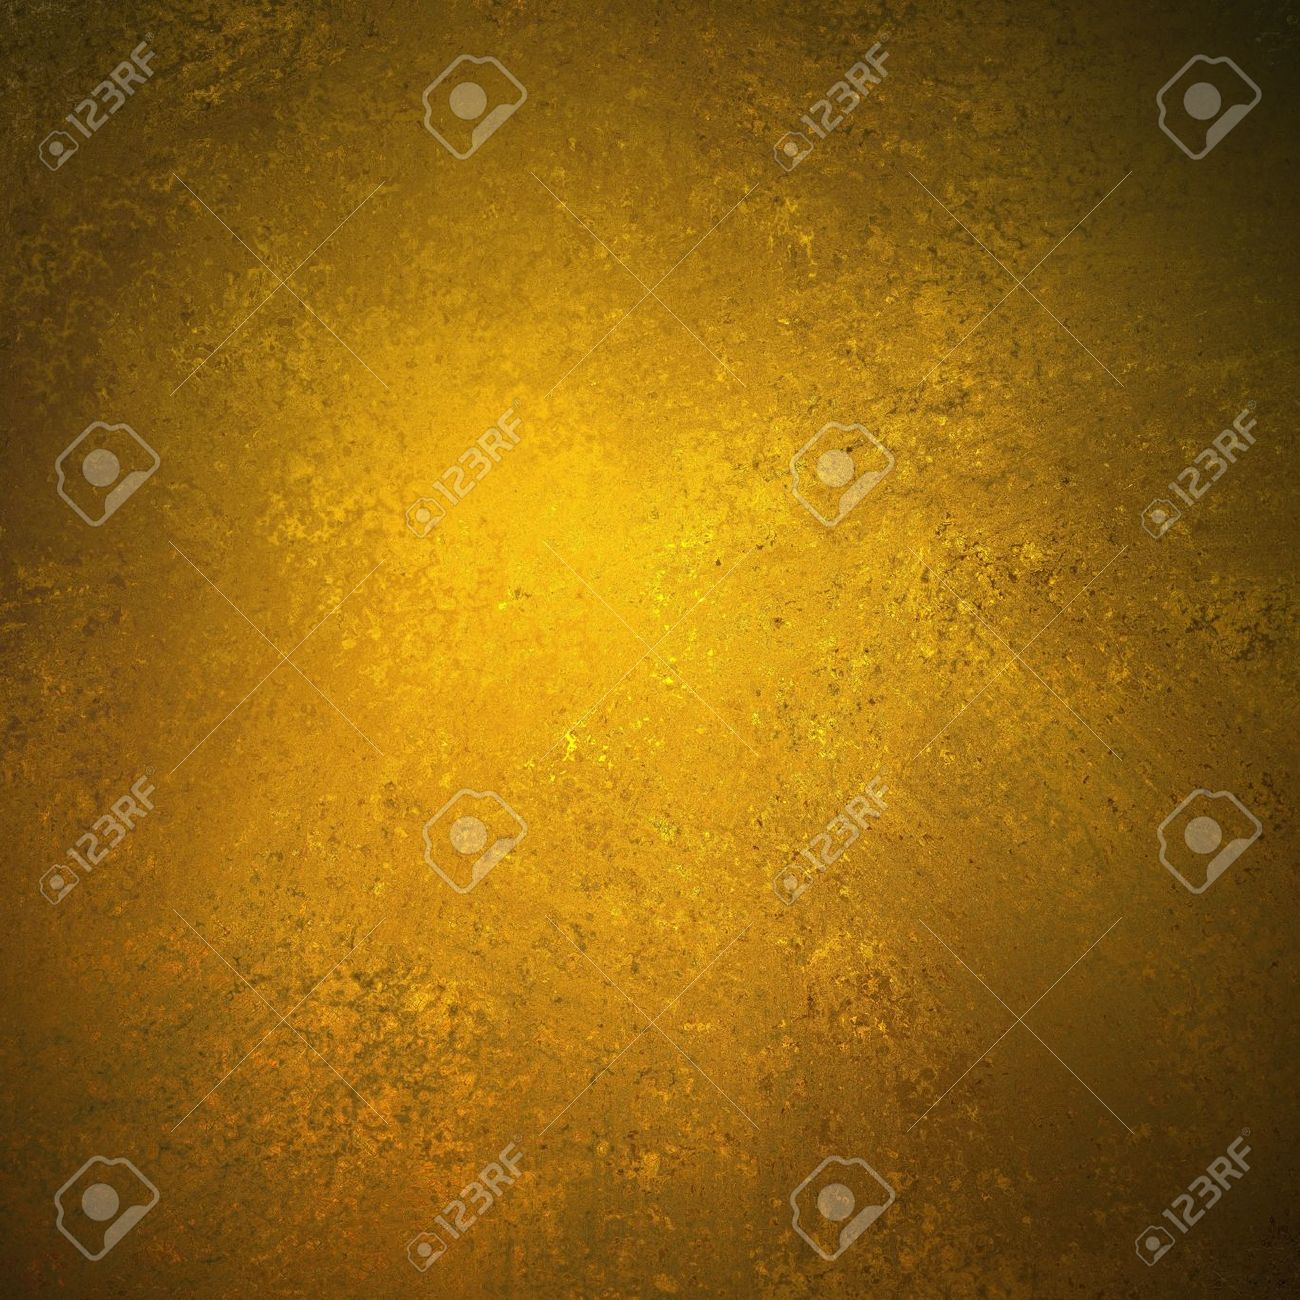 abstract gold background brown color design on border and black vintage grunge background texture, brown gold paper for golden anniversary announcements Stock Photo - 14187179